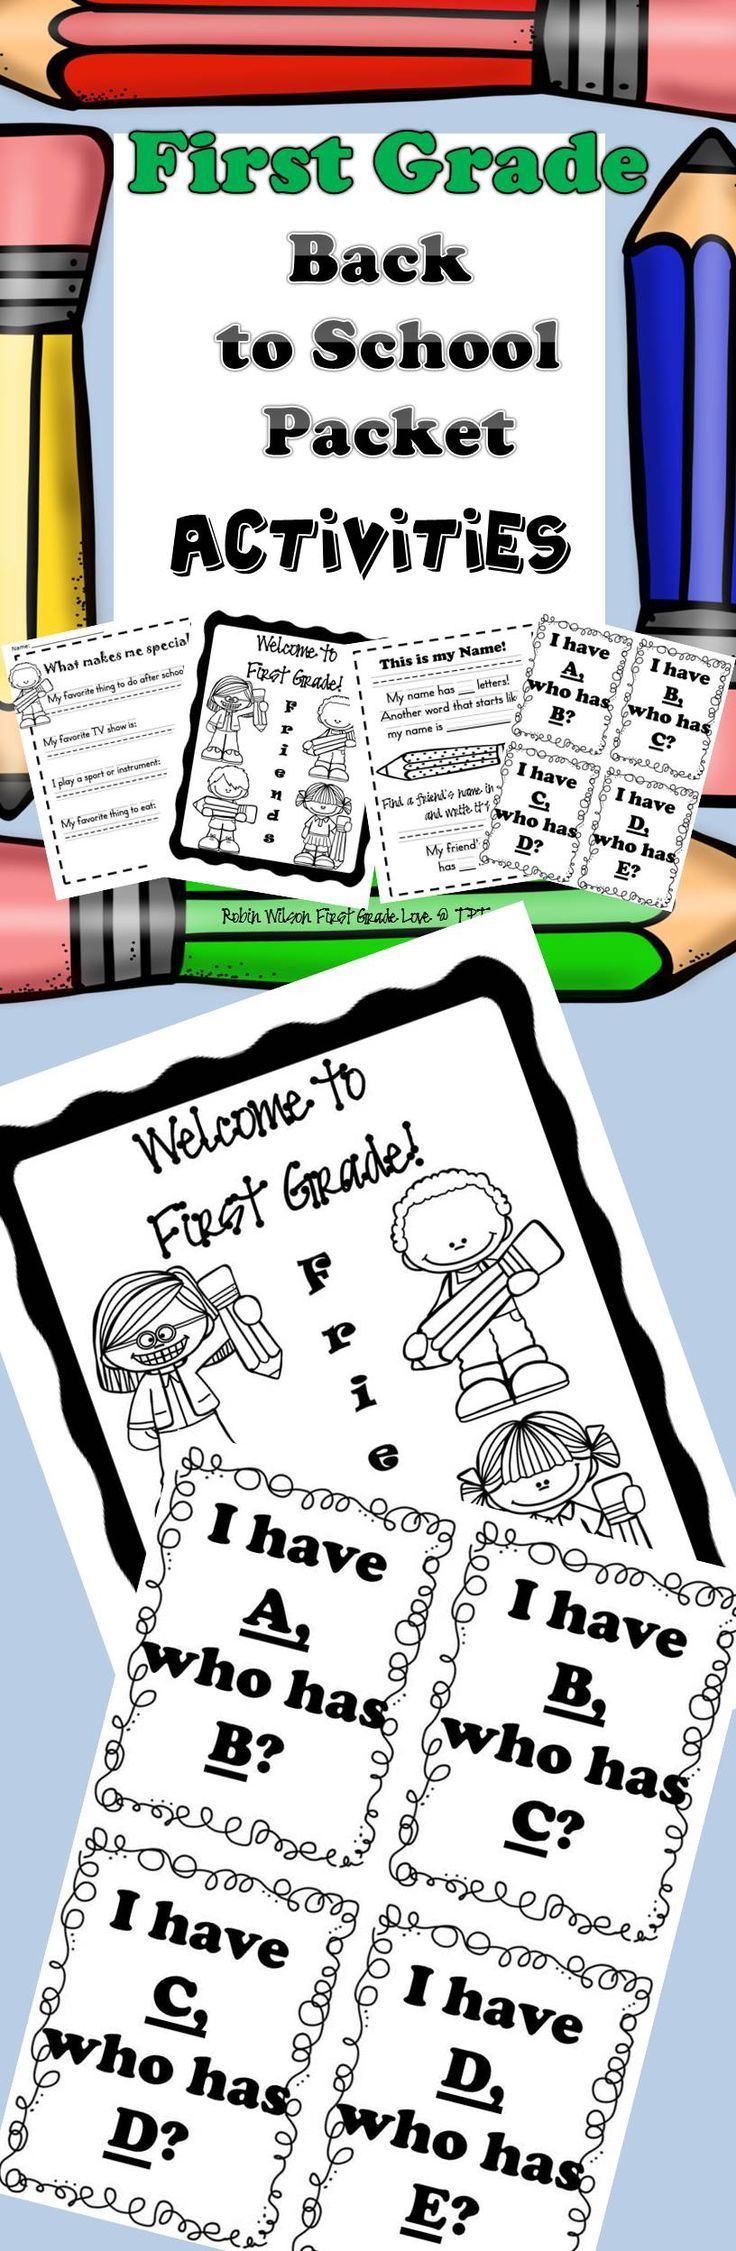 First Grade Back to School Activities perfect for the first day or first week of school! This packet includes fun games with their name, finding someone who..., I Have Who Has 123, and ABC, and more! These Back To School activities will be easy for you to grab and go!